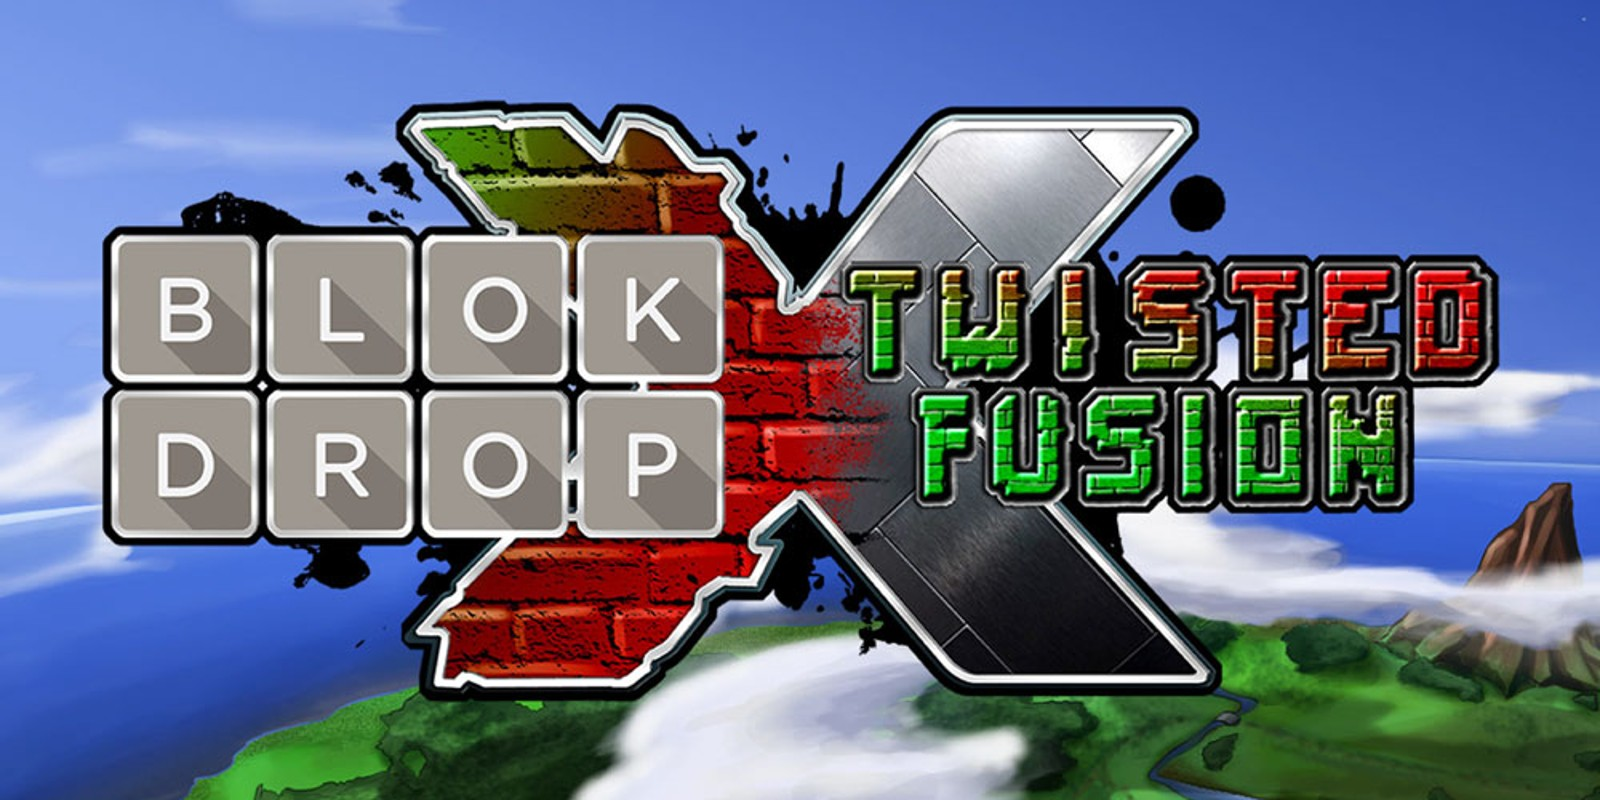 BLOK DROP X TWISTED FUSION